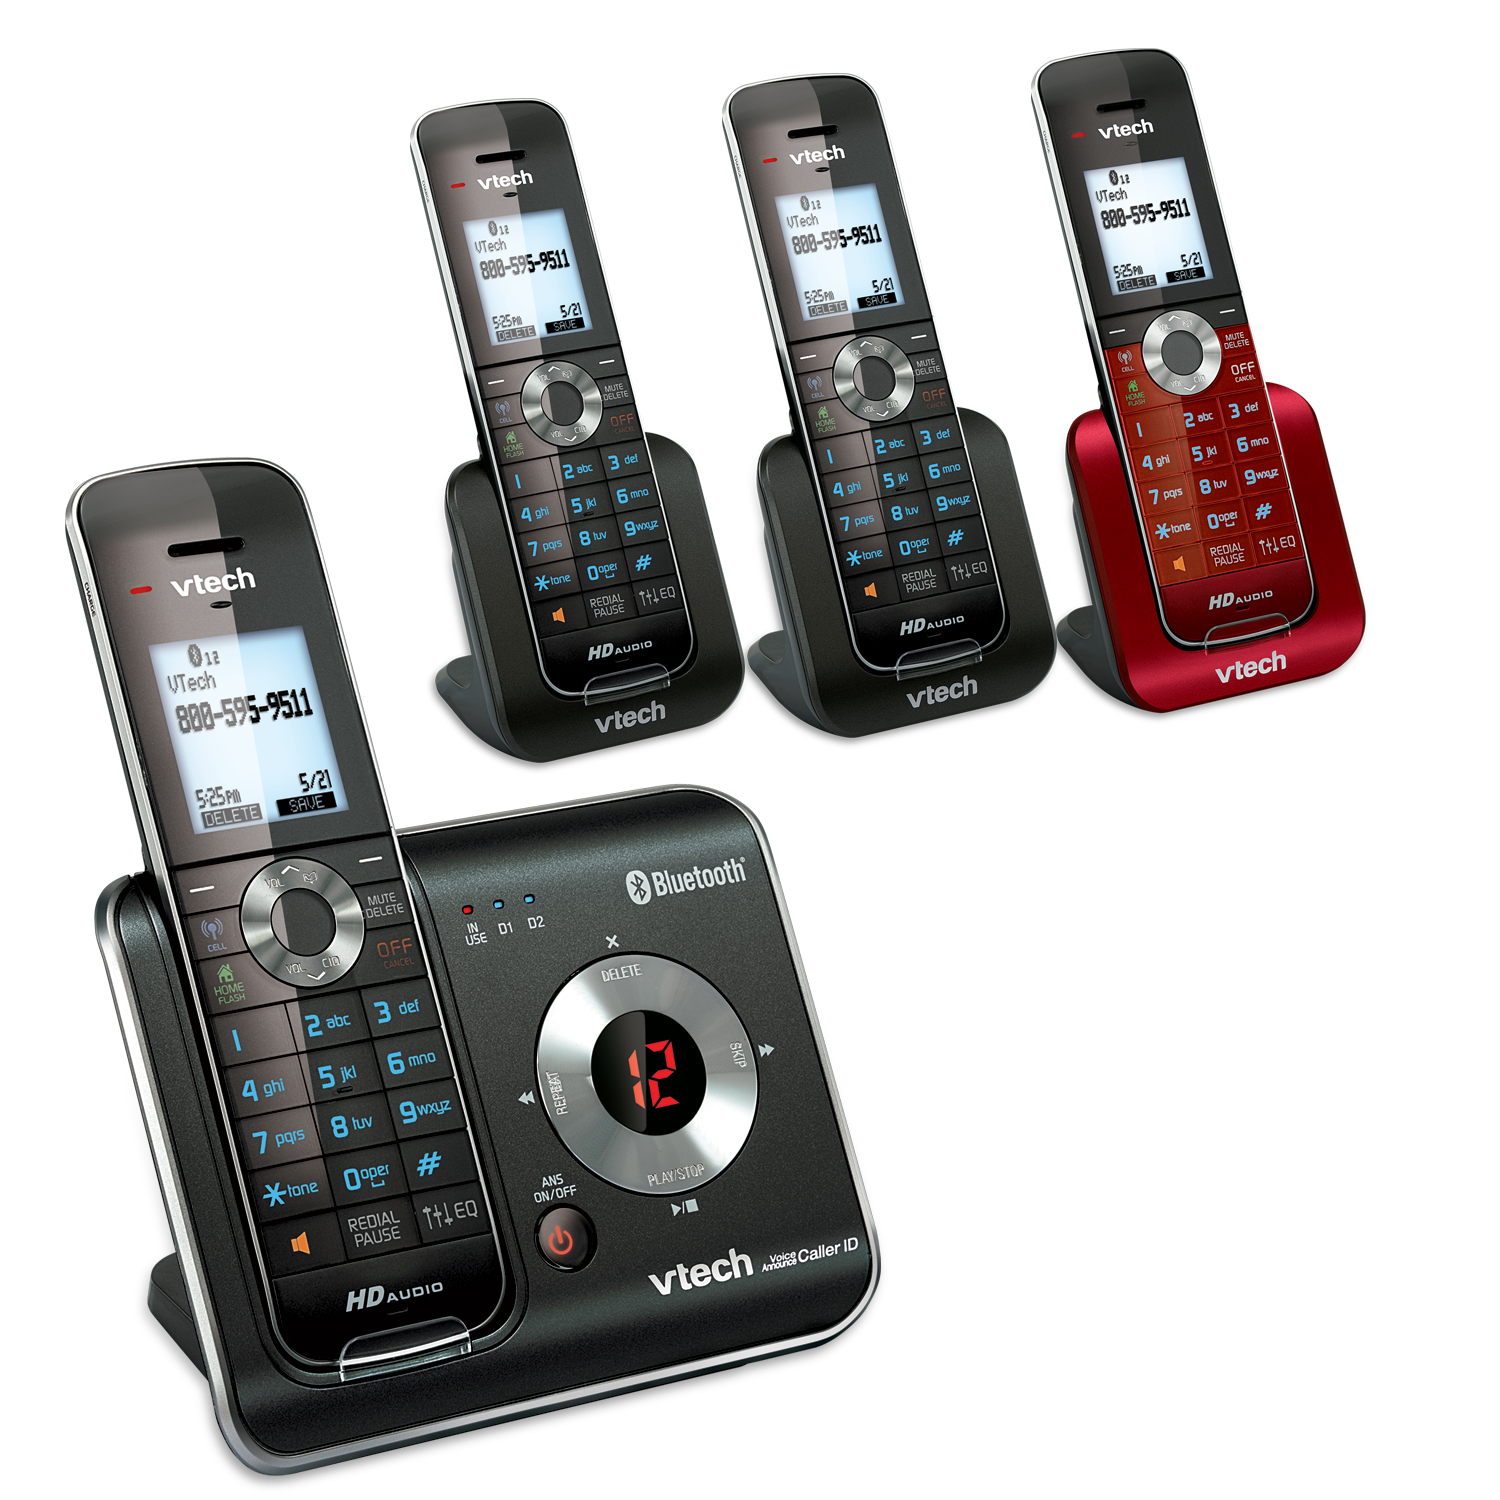 4 Handset Connect to Cell™ Answering System with Caller ID/Call Waiting